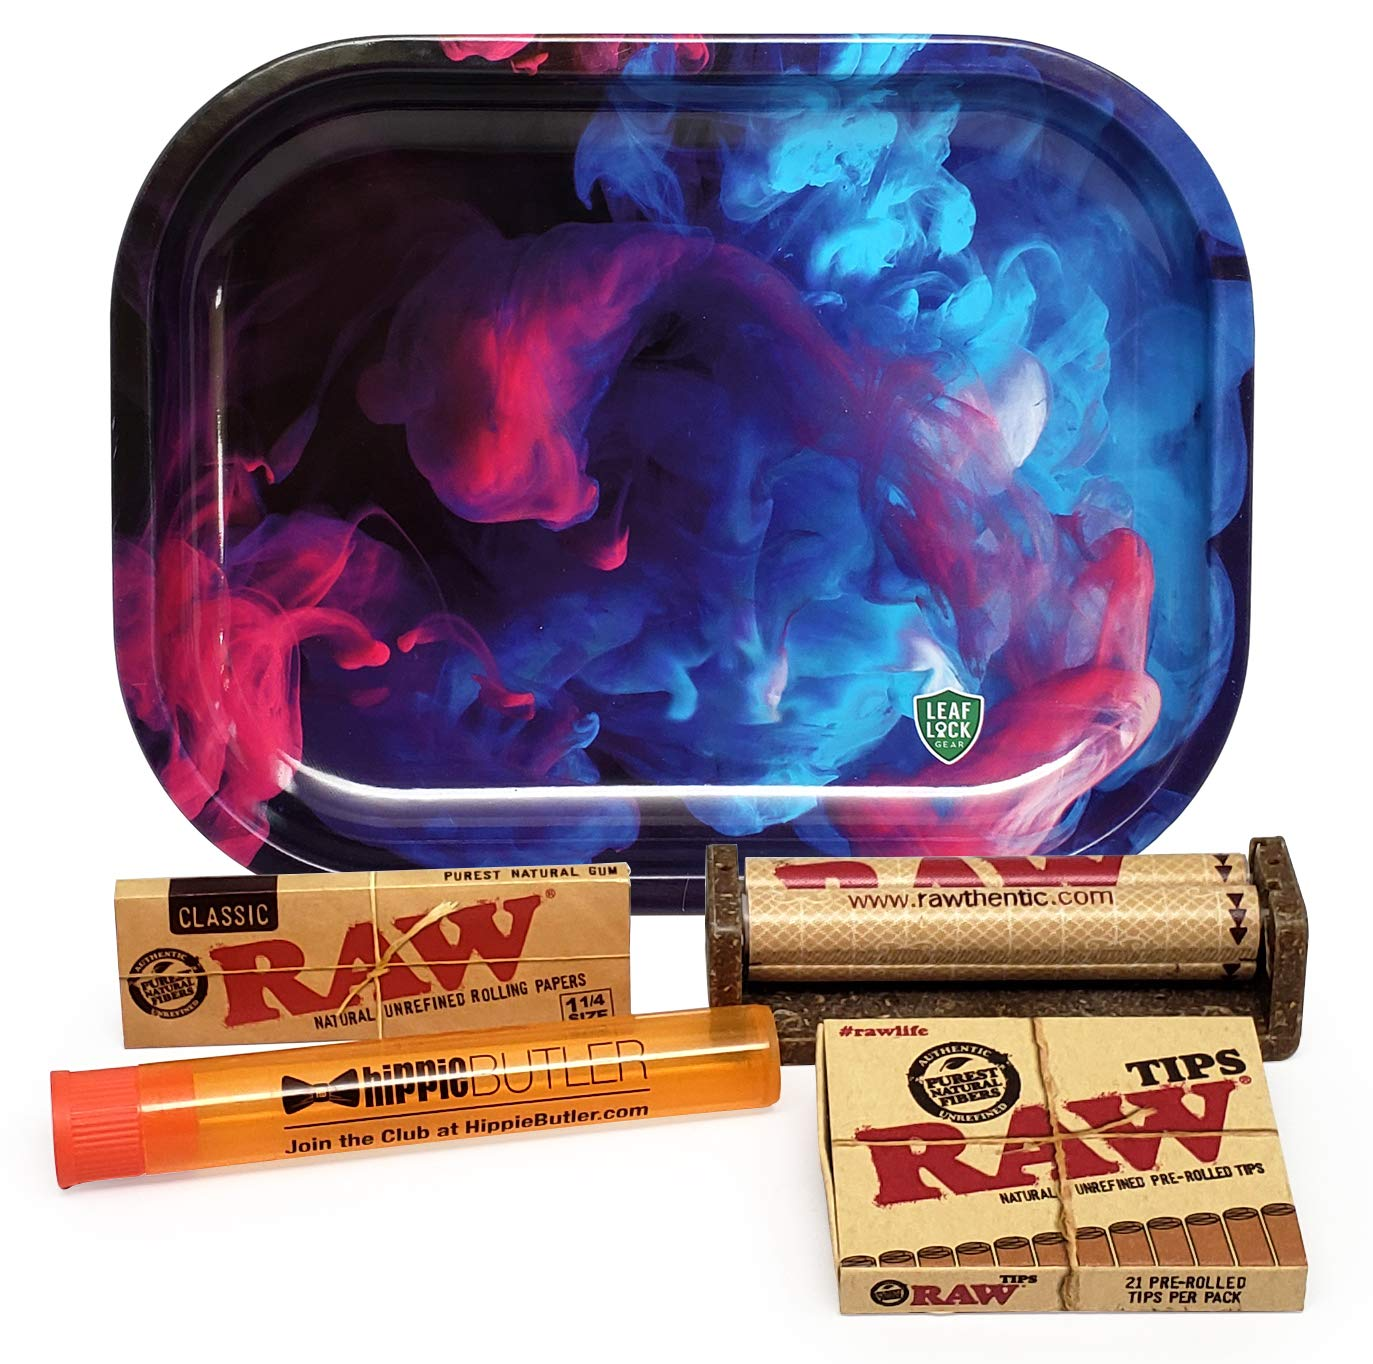 Bundle - 5 Items - RAW Classic 1 1/4 Rolling Papers, 79mm Roller, Pre-Rolled Tips with Leaf Lock Gear Mini Rolling Tray (Color Swirl) and Hippie Butler Kewl Tube